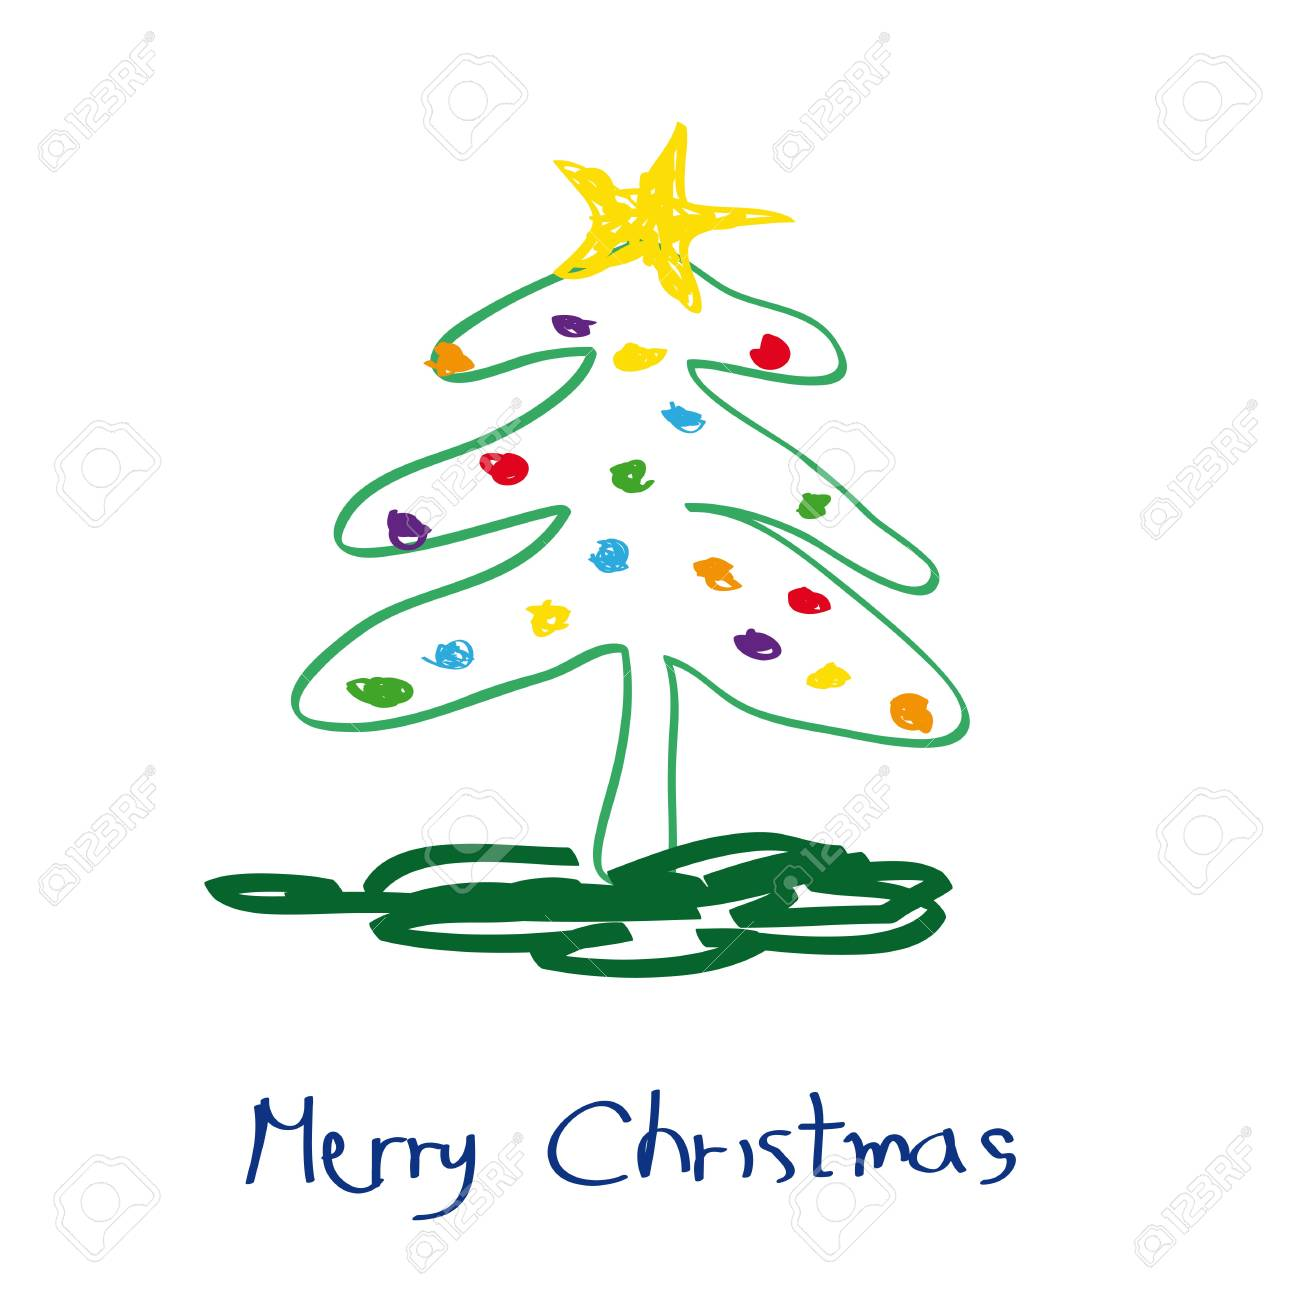 Cute And Simple Christmas Card With Christmas Tree Royalty Free ...